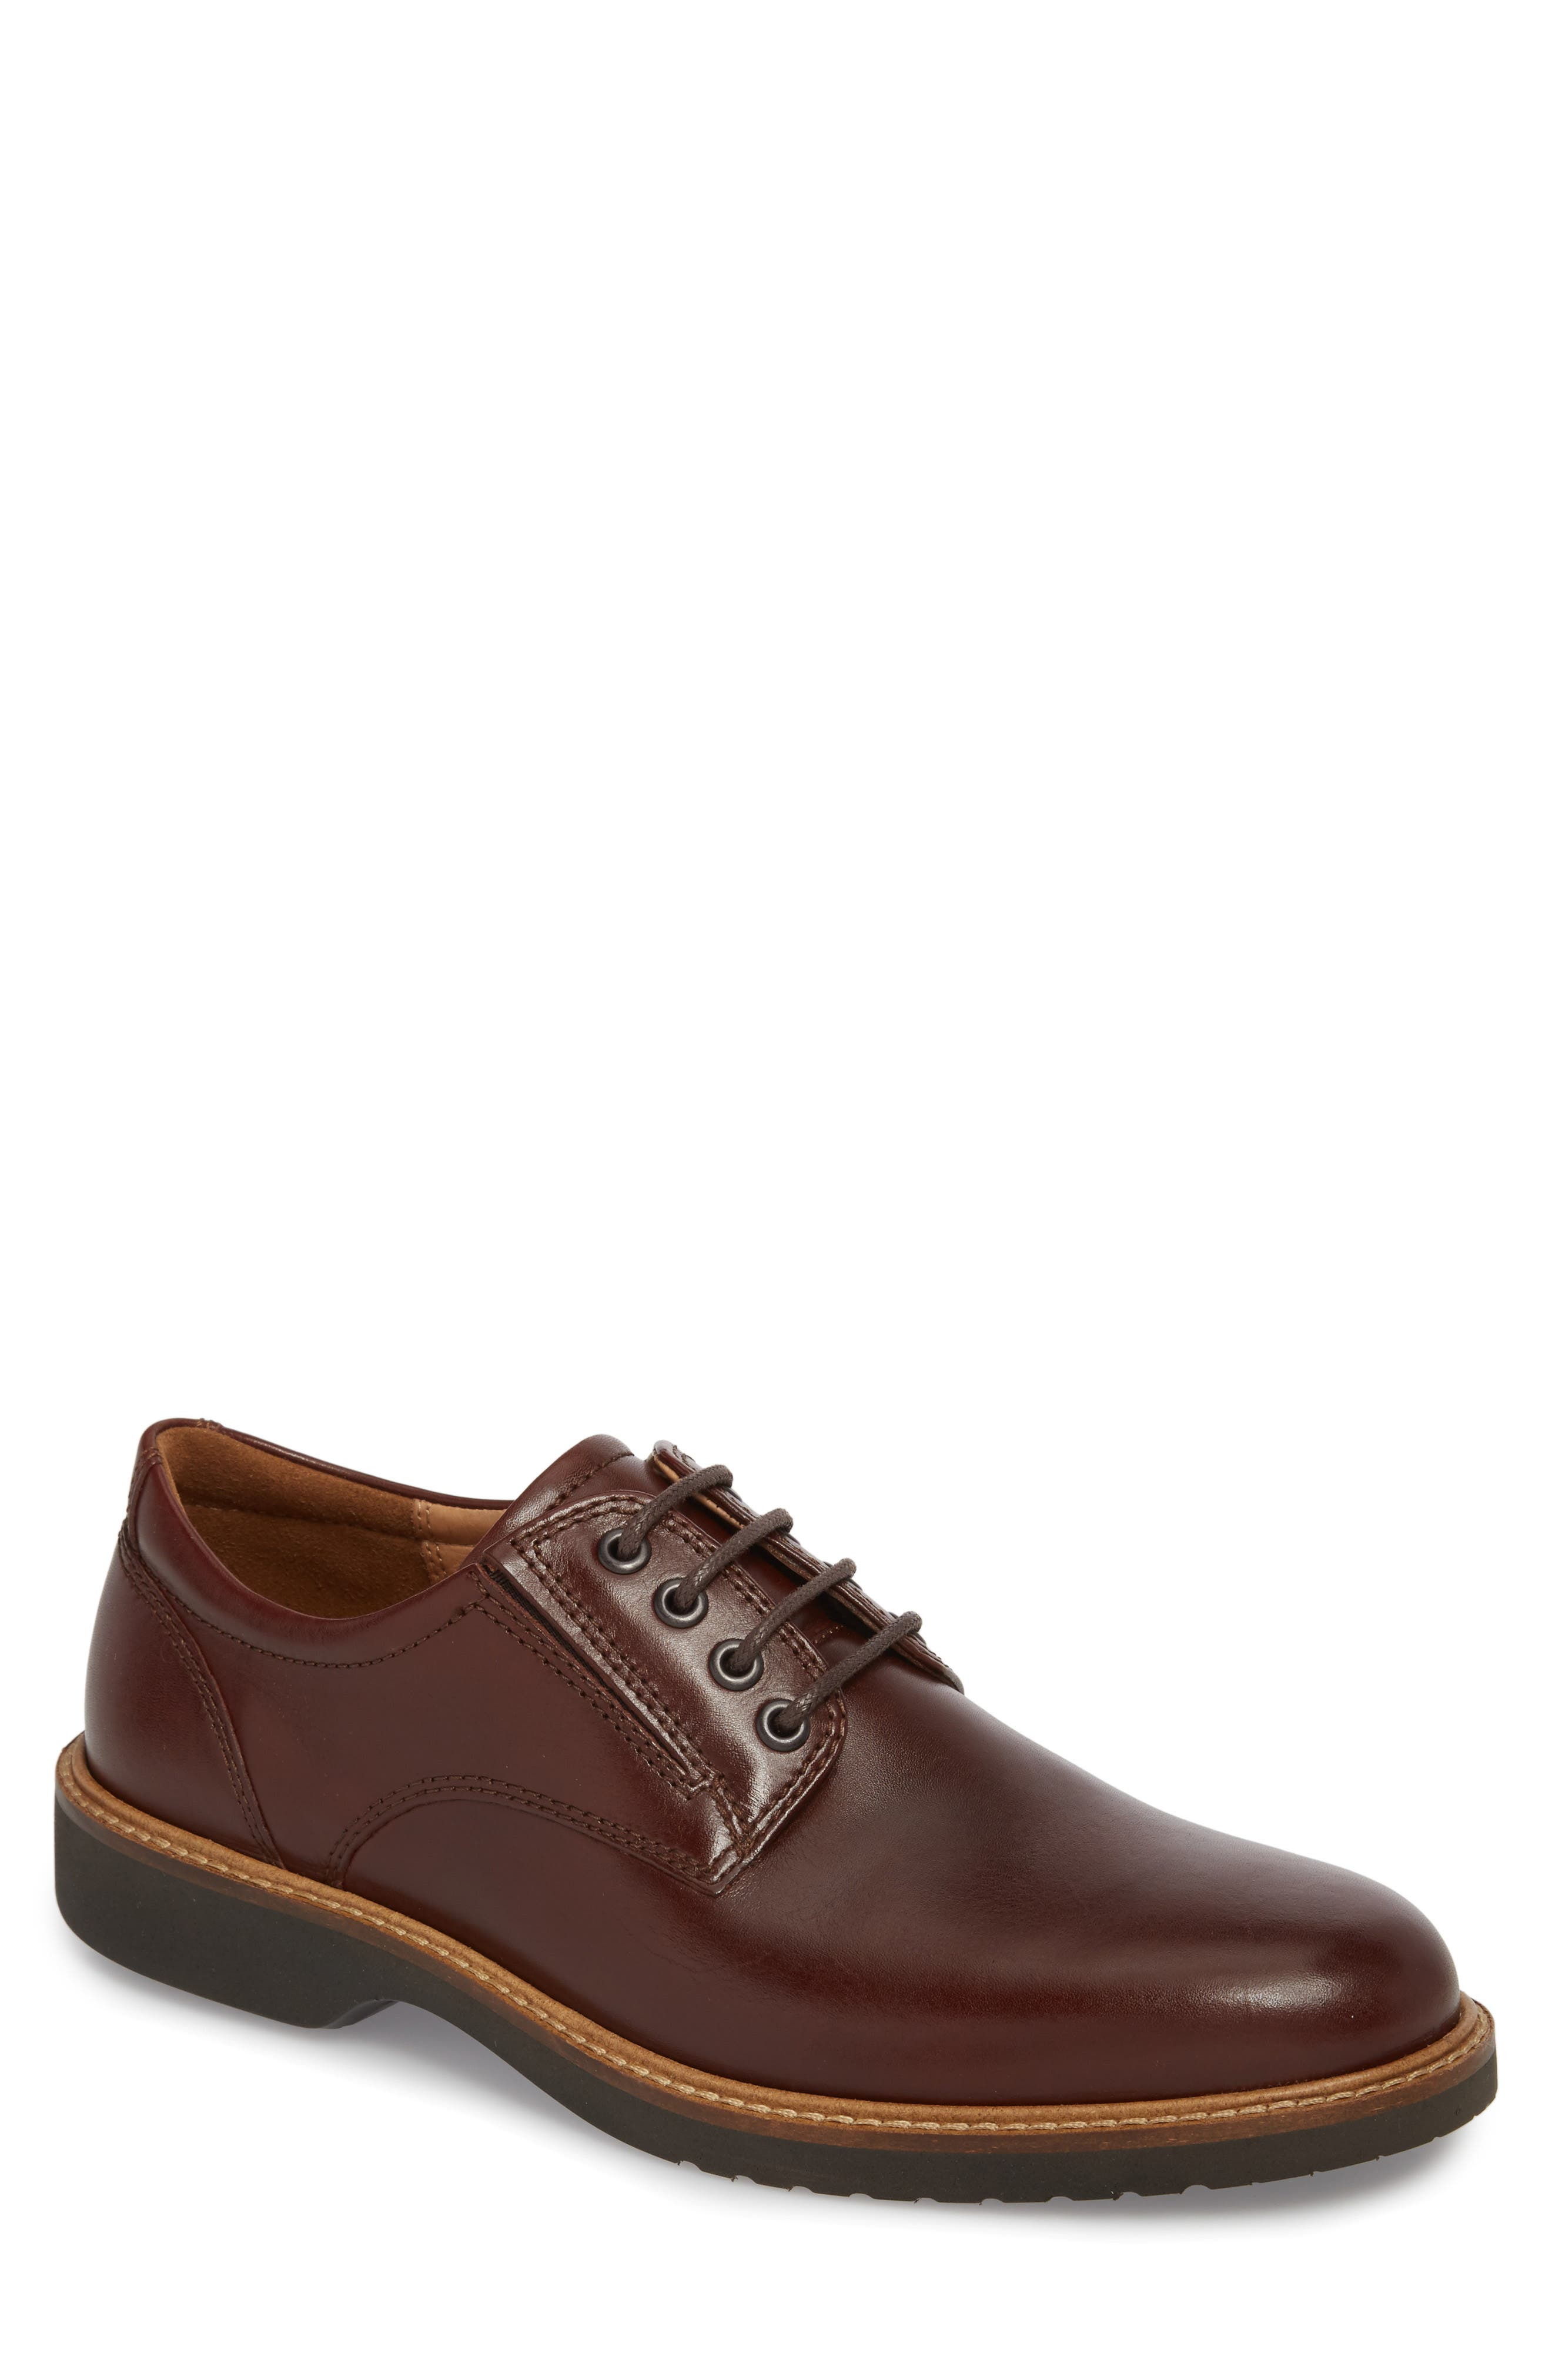 Ian Casual Plain Toe Derby,                             Main thumbnail 1, color,                             Mink Leather